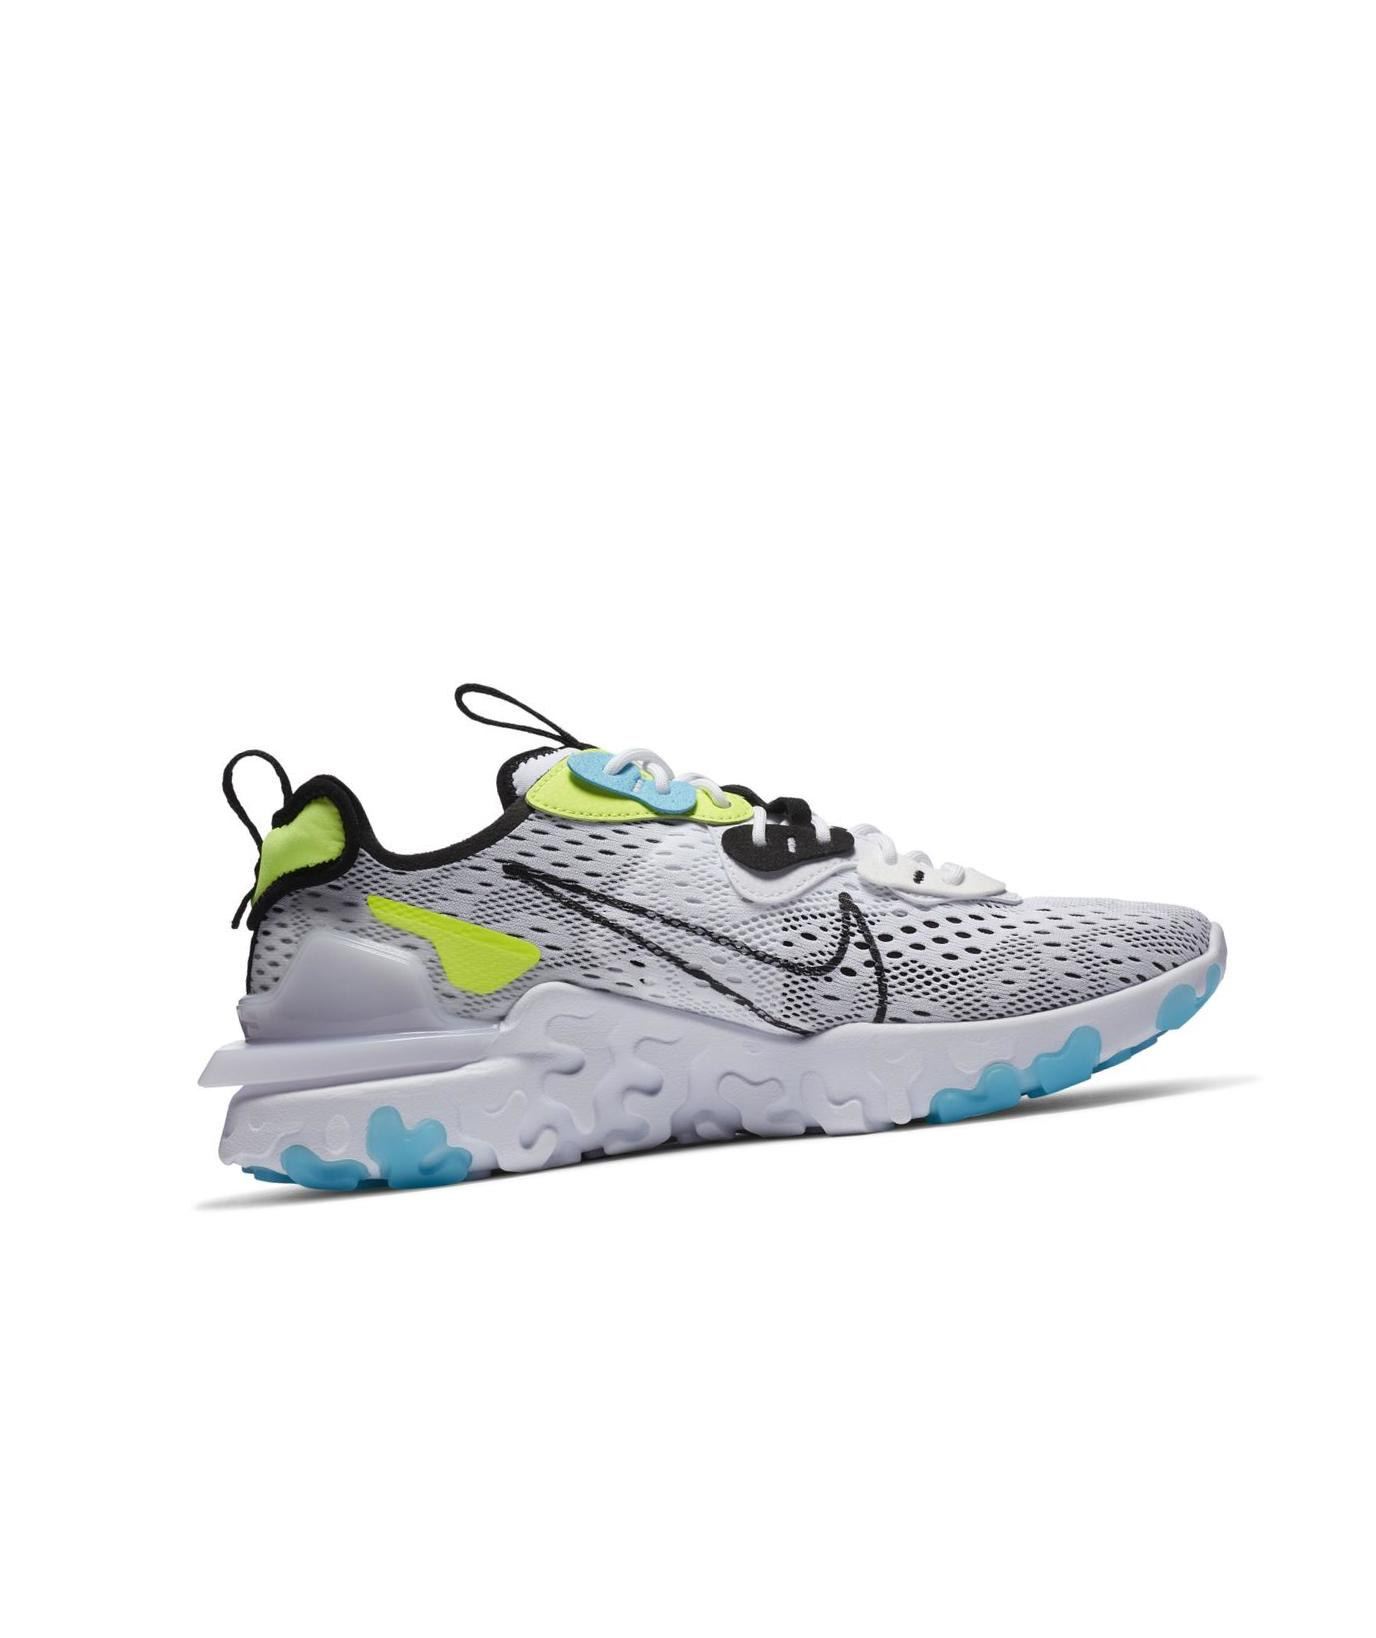 Nike React Vision White/Volt/Blue Fury/Black